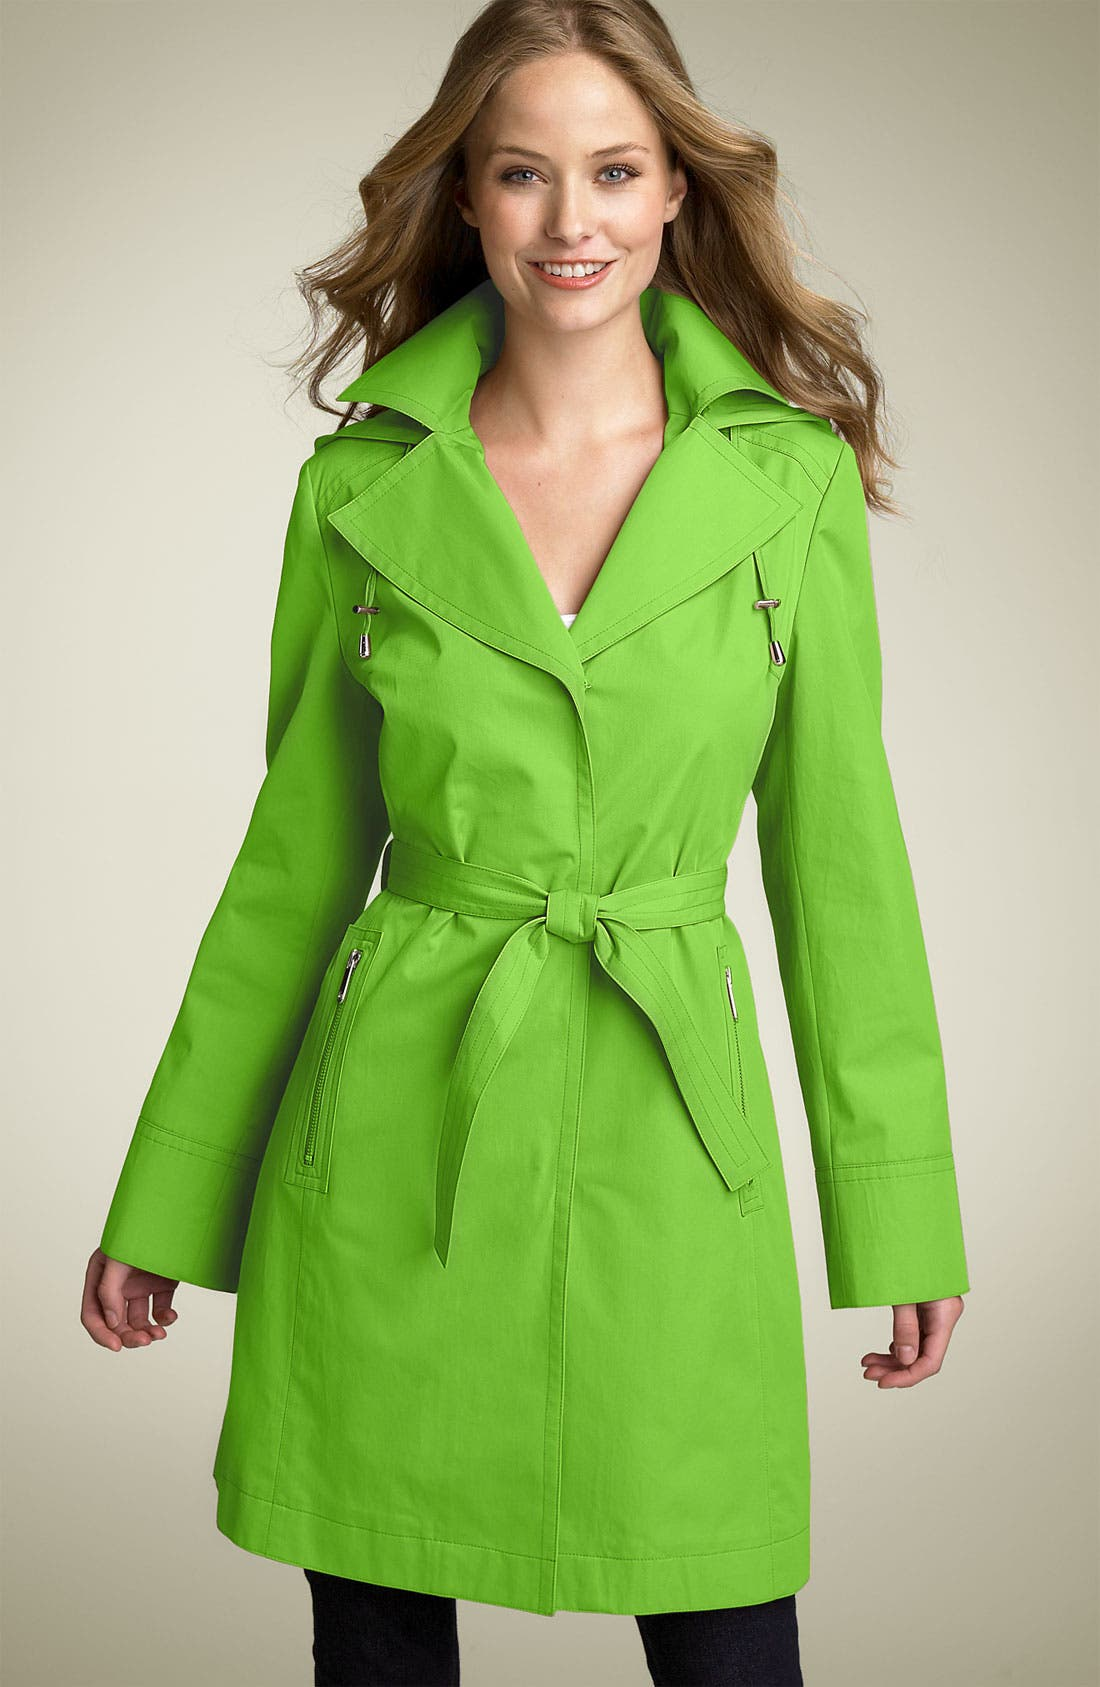 Alternate Image 1 Selected - MICHAEL Michael Kors Notched Collar Trench